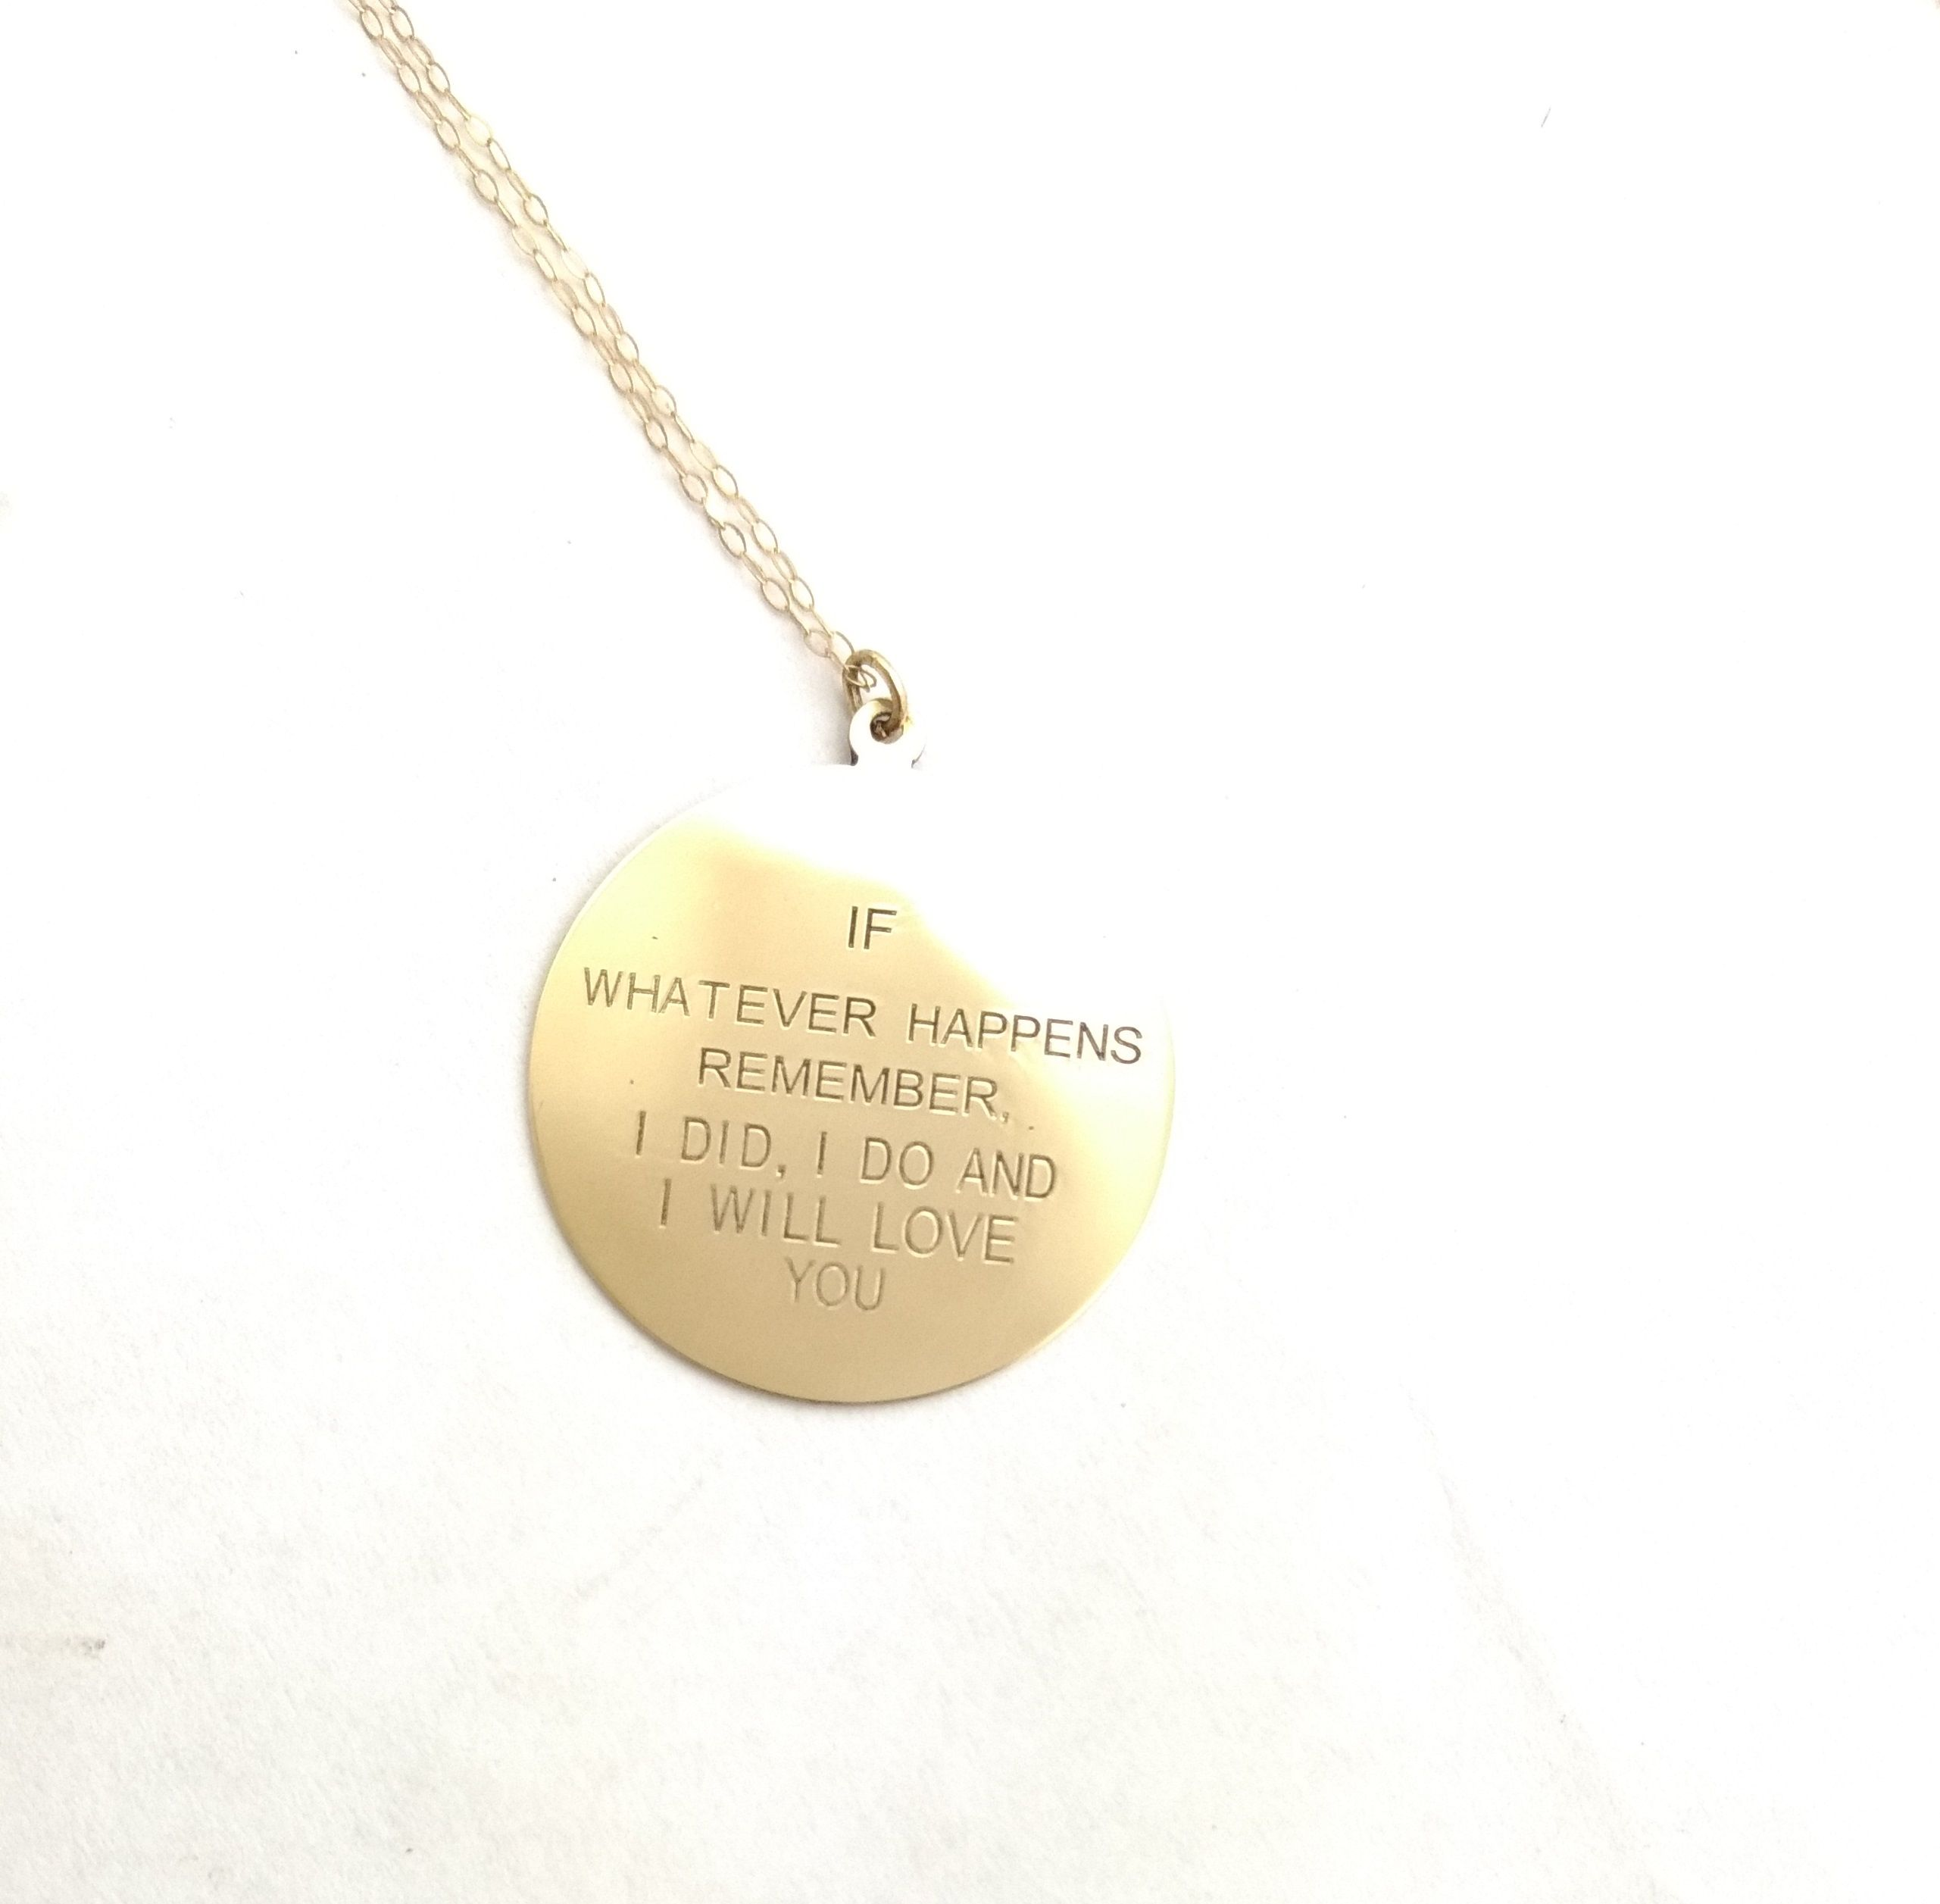 engraved uniqjewelrydesigns filled pendant gold necklace name